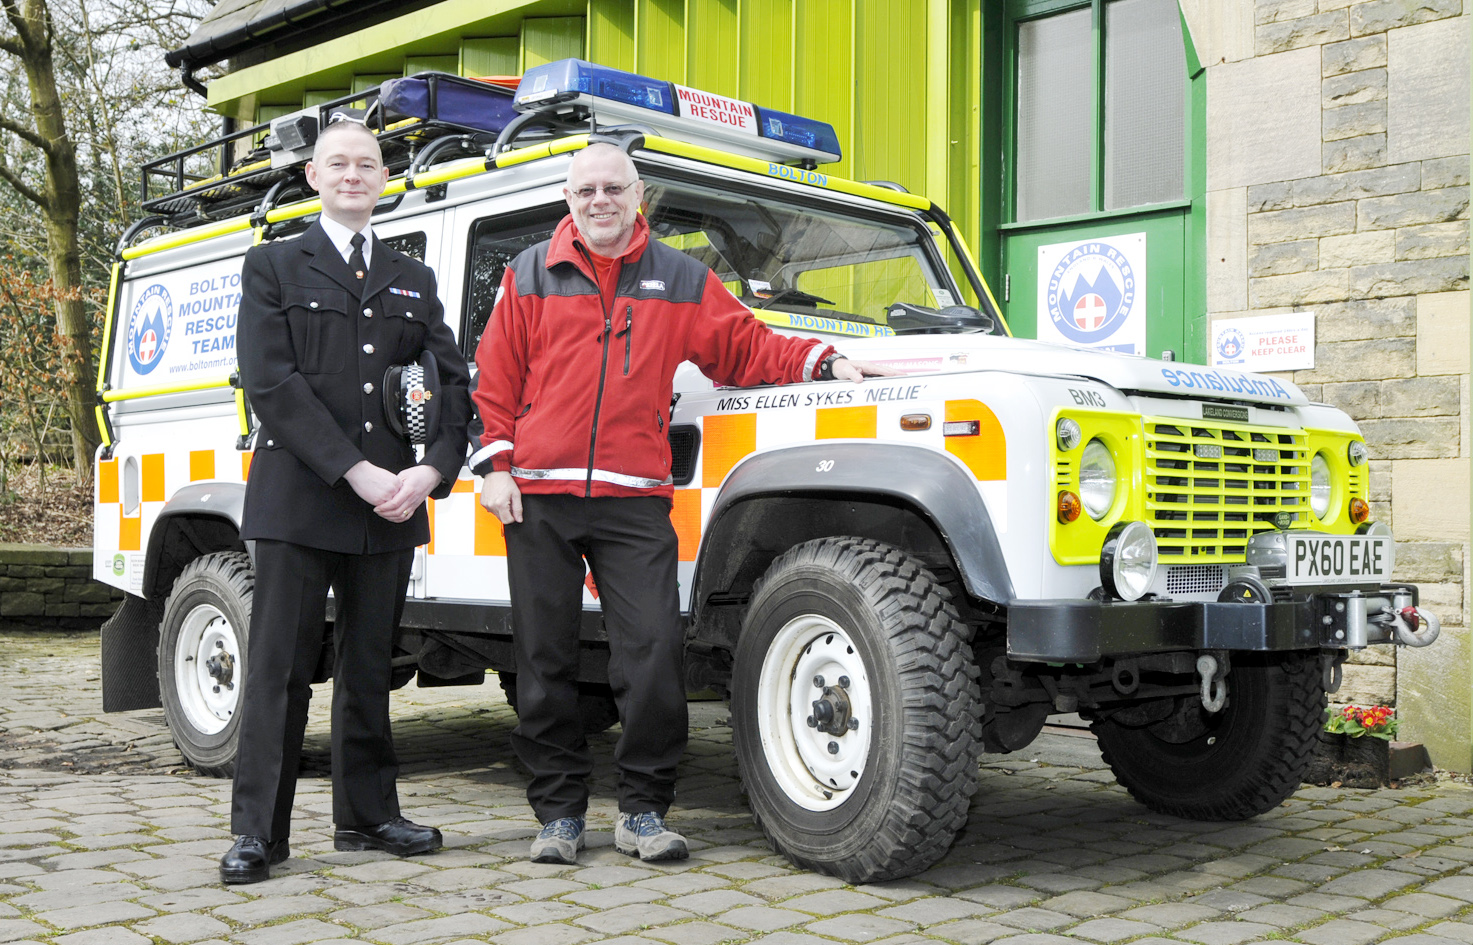 Insp Michael Eddleston and Garry Rhodes from Bolton Mountain Rescue Team